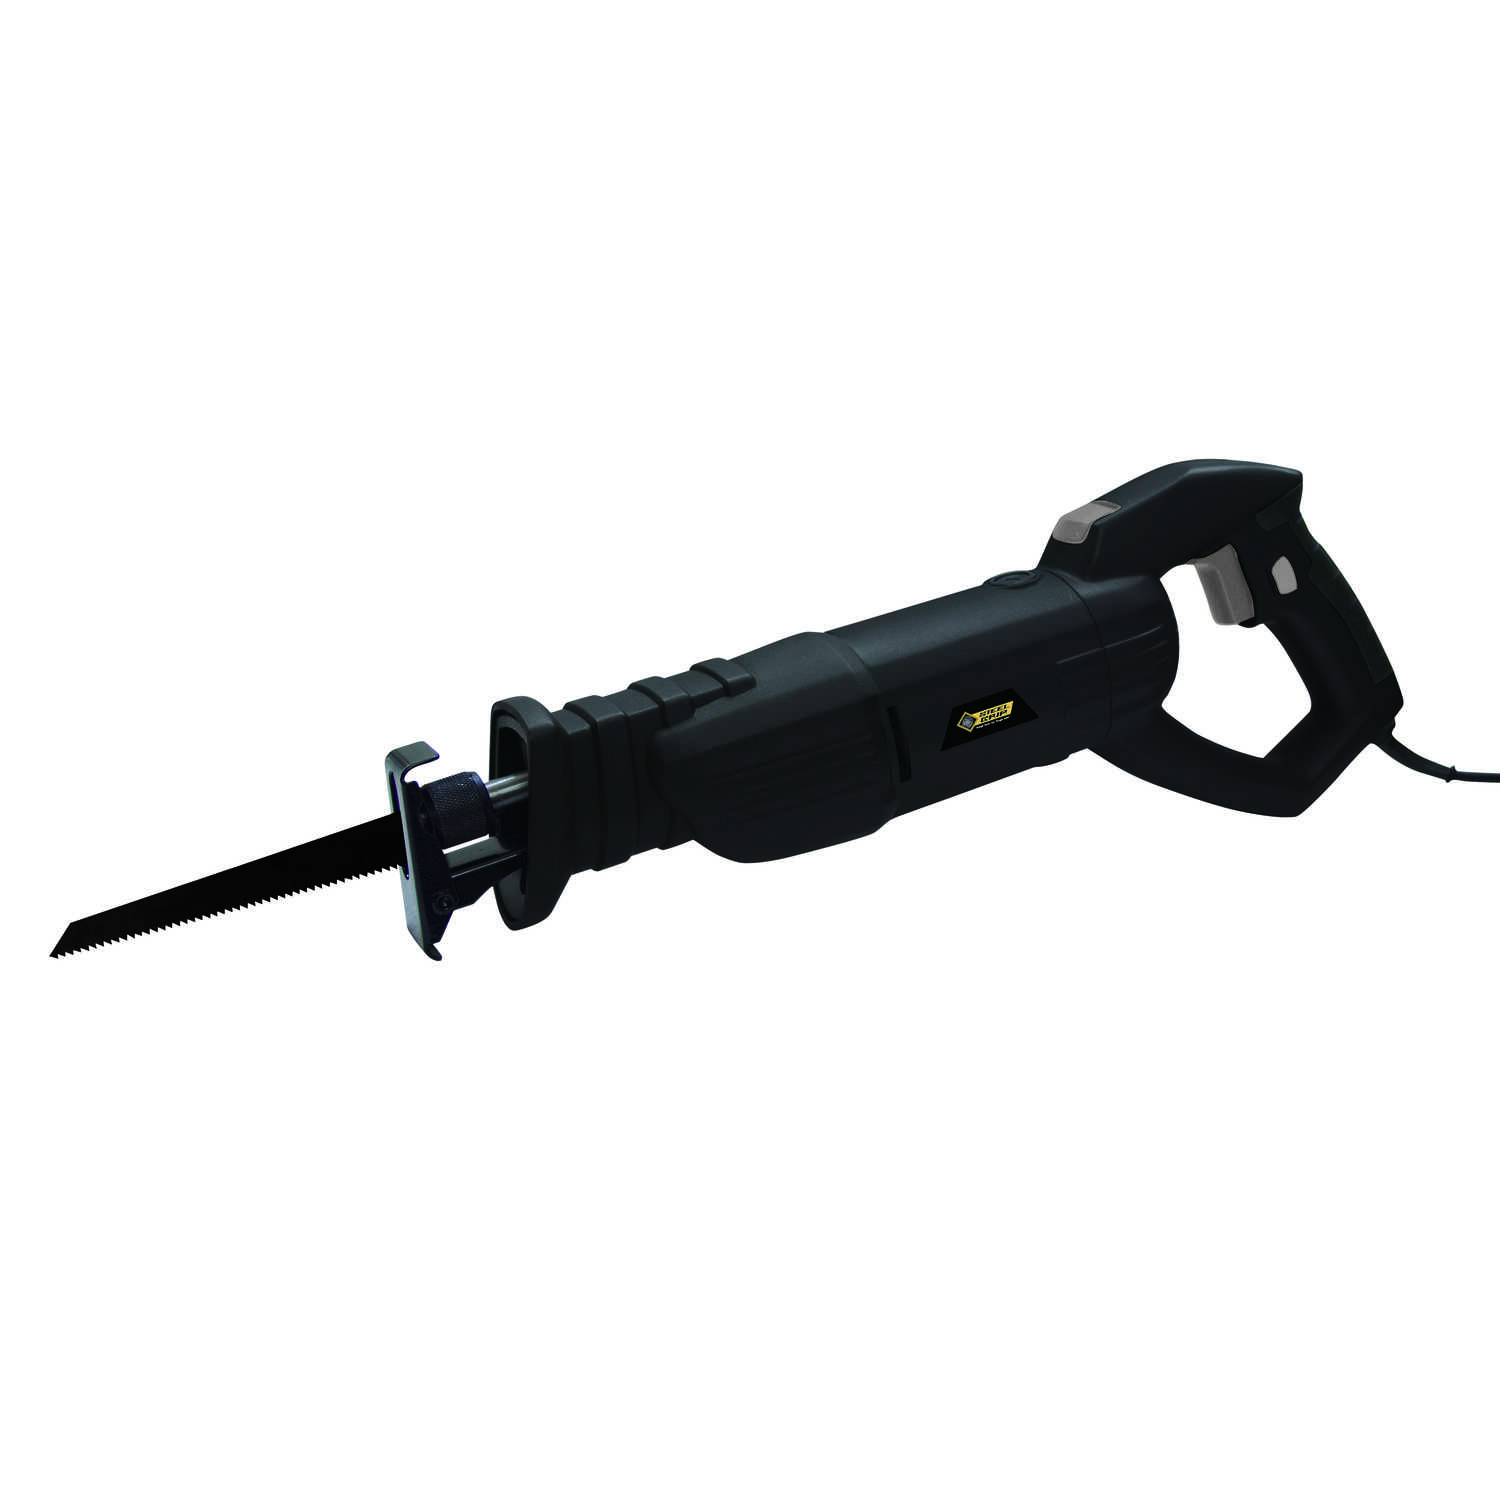 Steel Grip  Corded  7.3 amps Reciprocating Saw